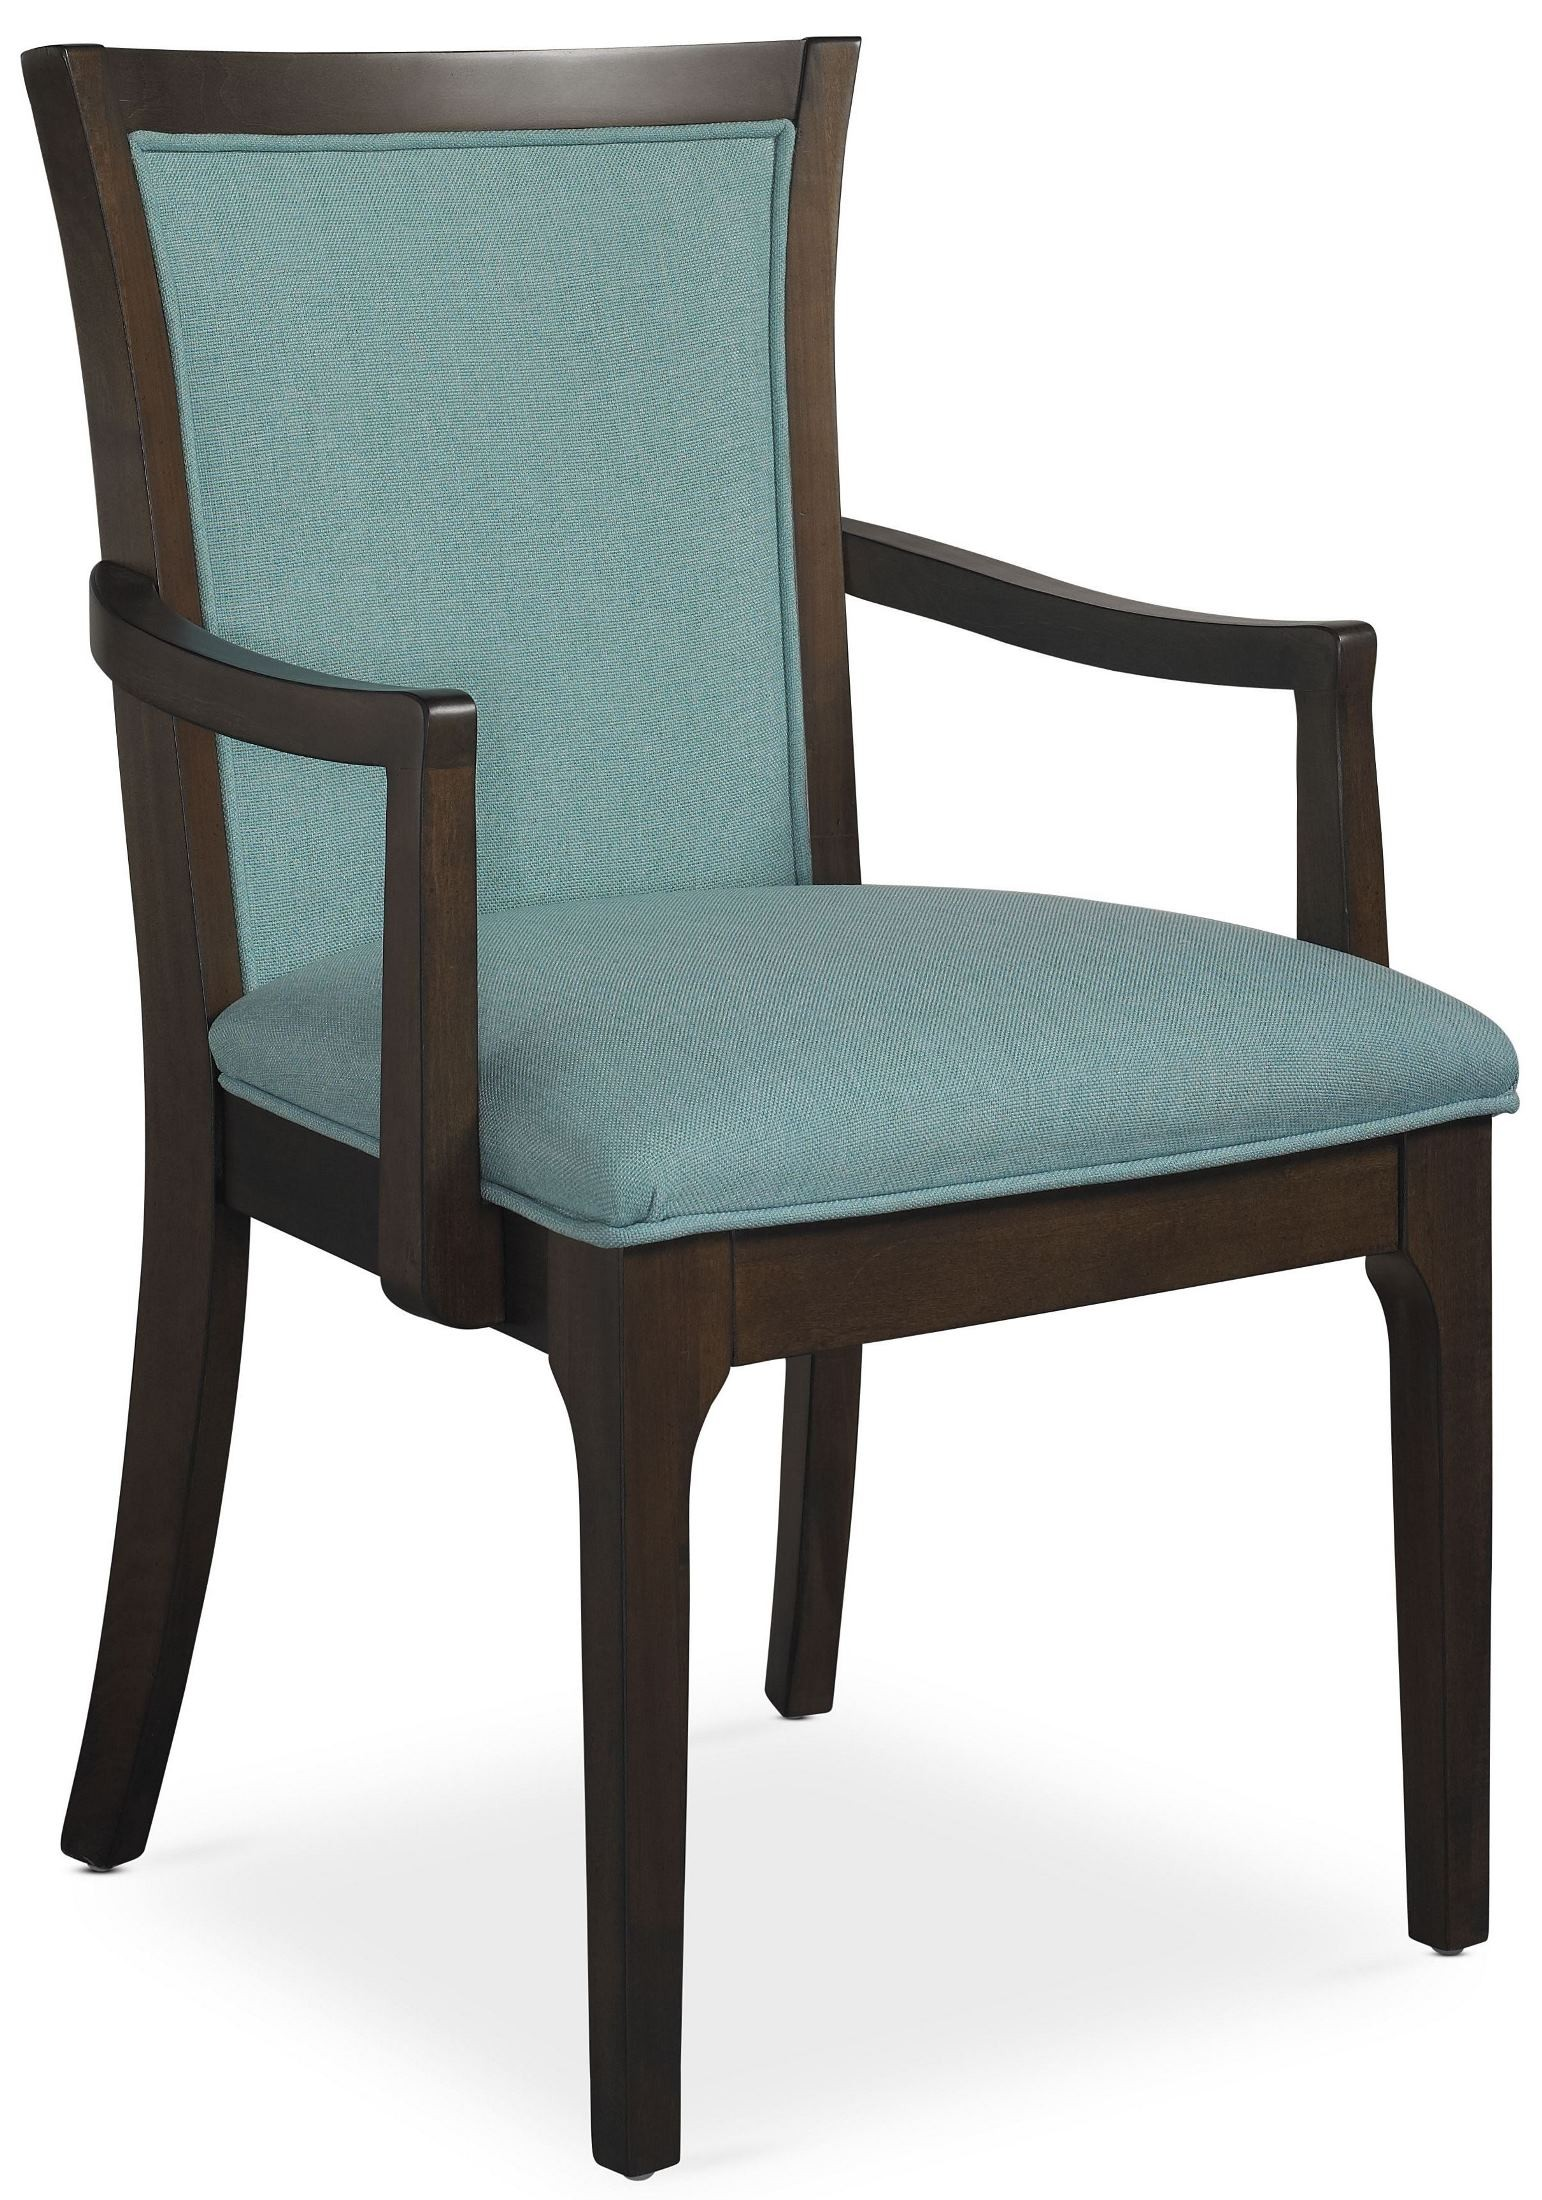 Improv in b clear brown and maxi teal fabric arm chair for Teal and brown chair